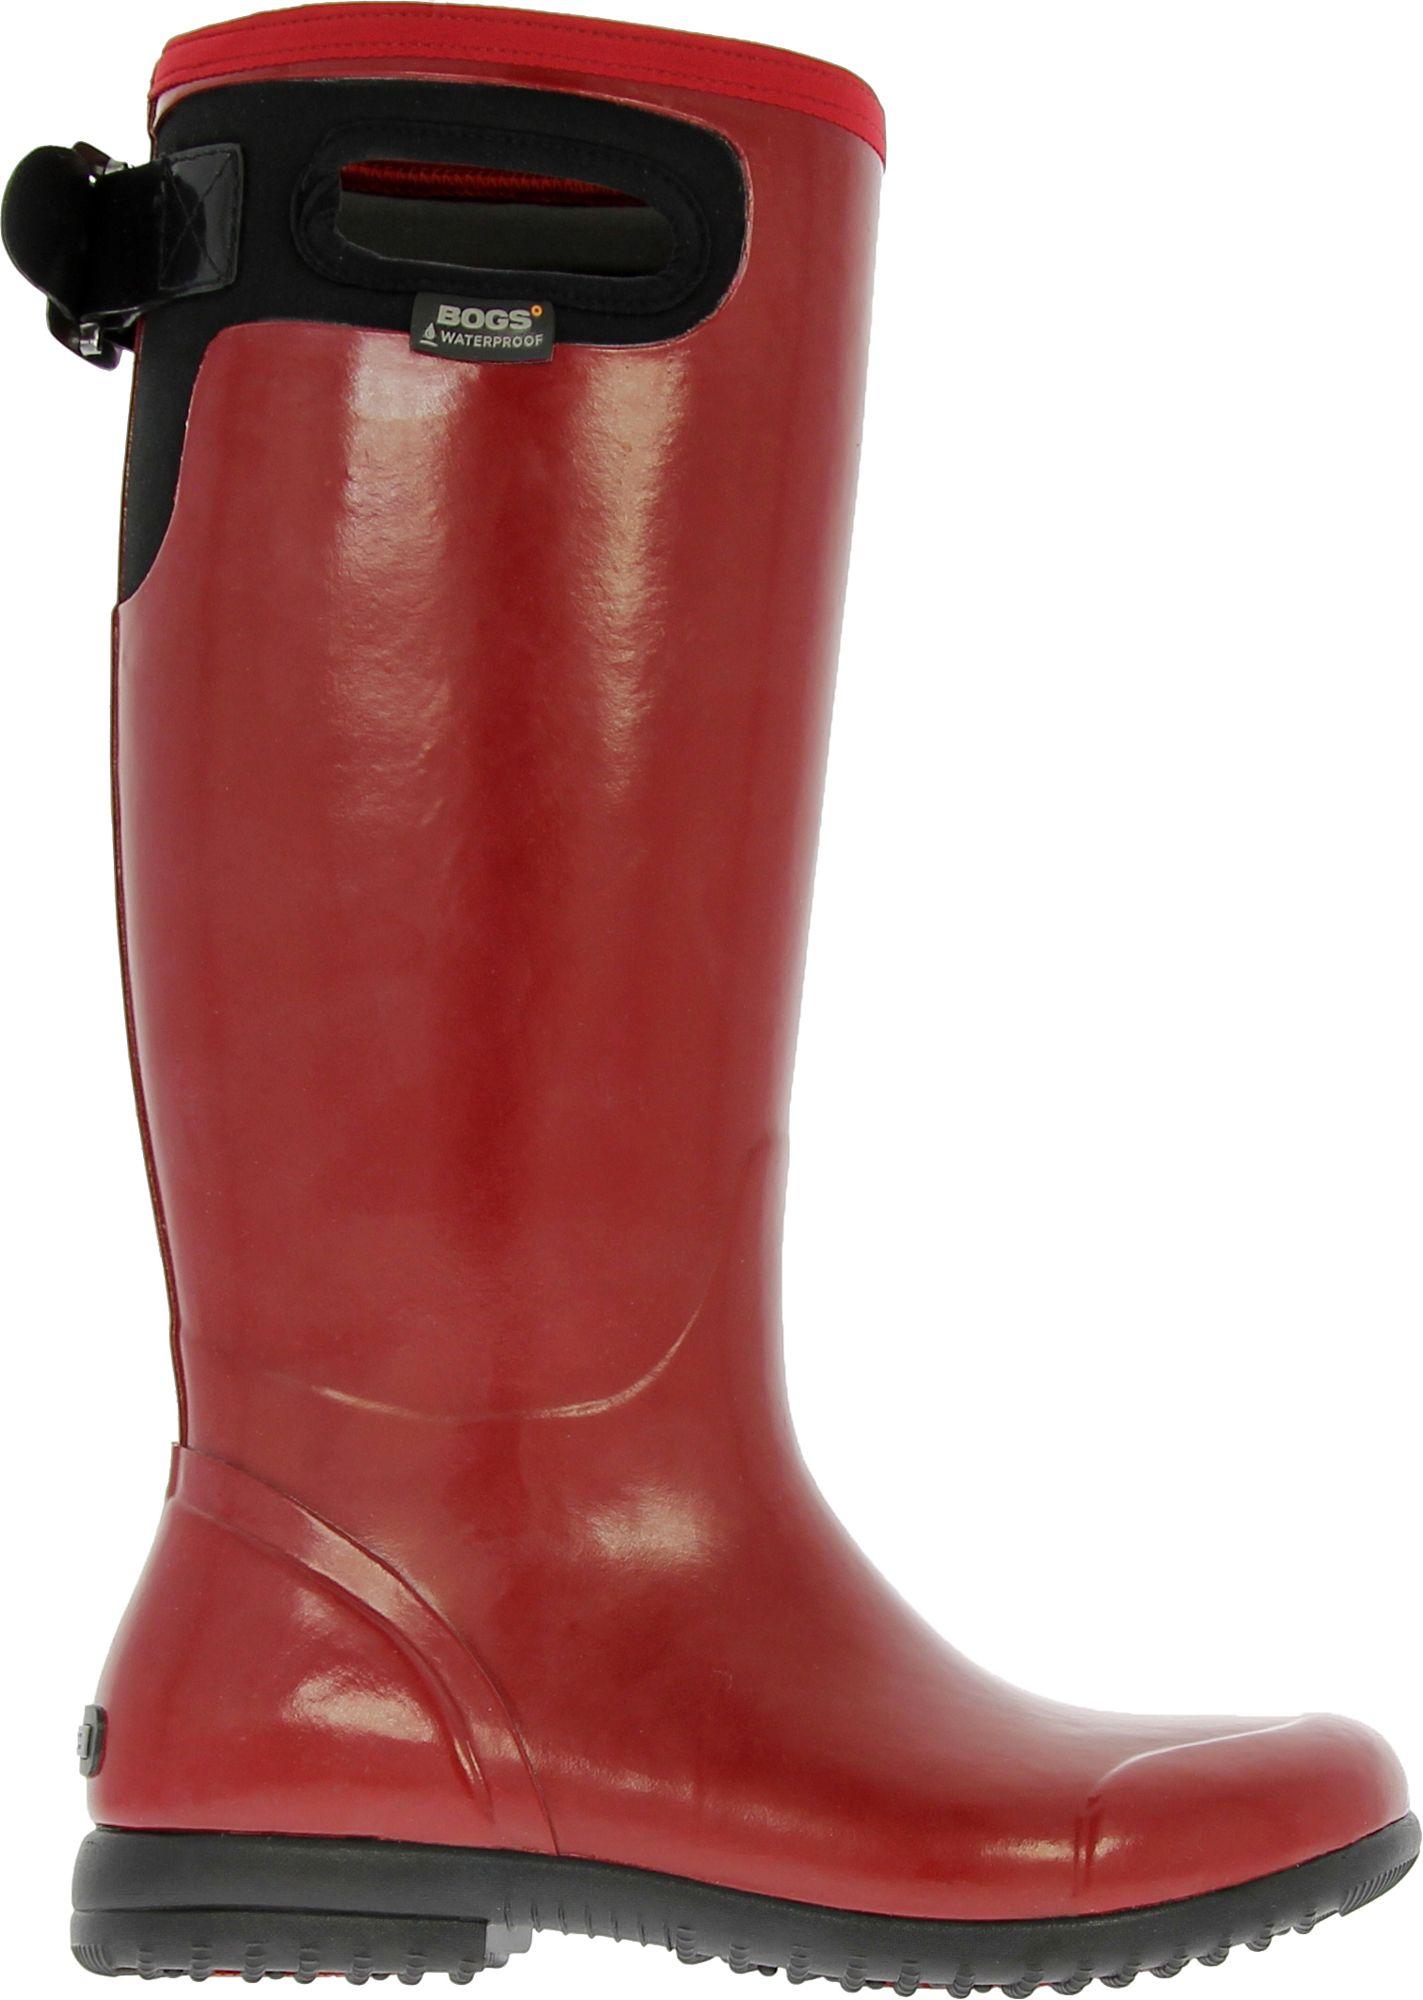 "BOGS Women's Tacoma Tall 13"" Insulated Waterproof Rain Boots ..."